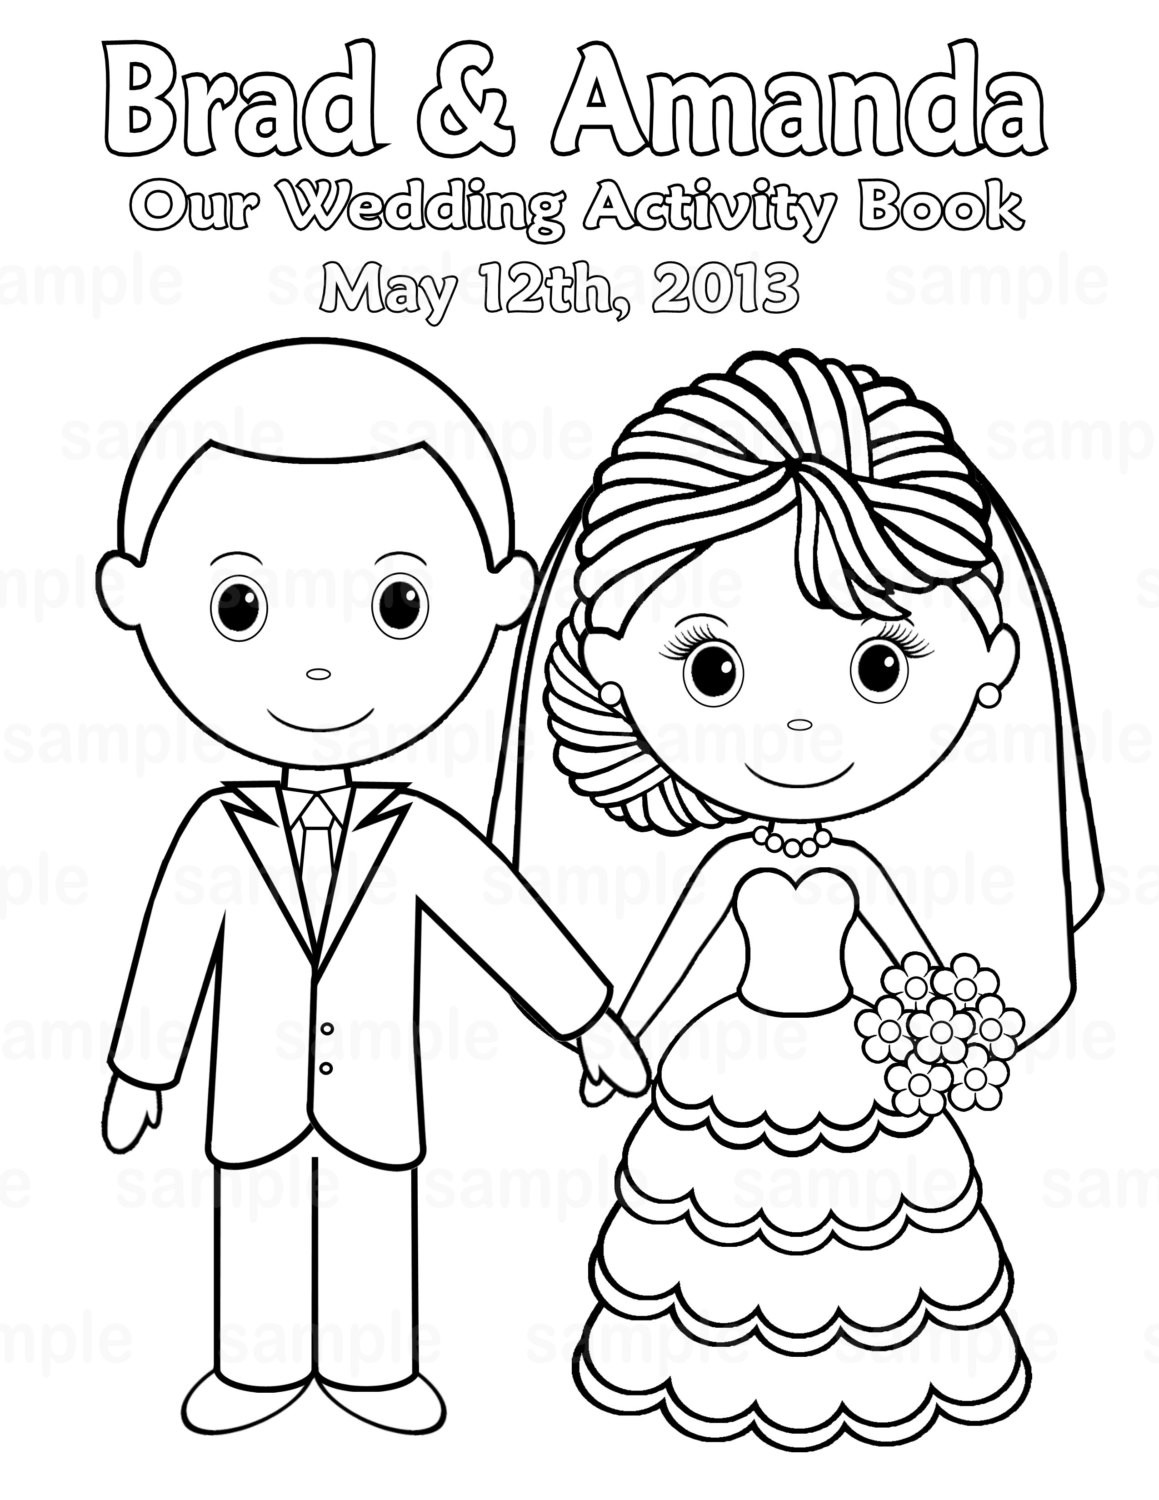 Personalized Coloring Pages  Printable Personalized Wedding coloring activity by